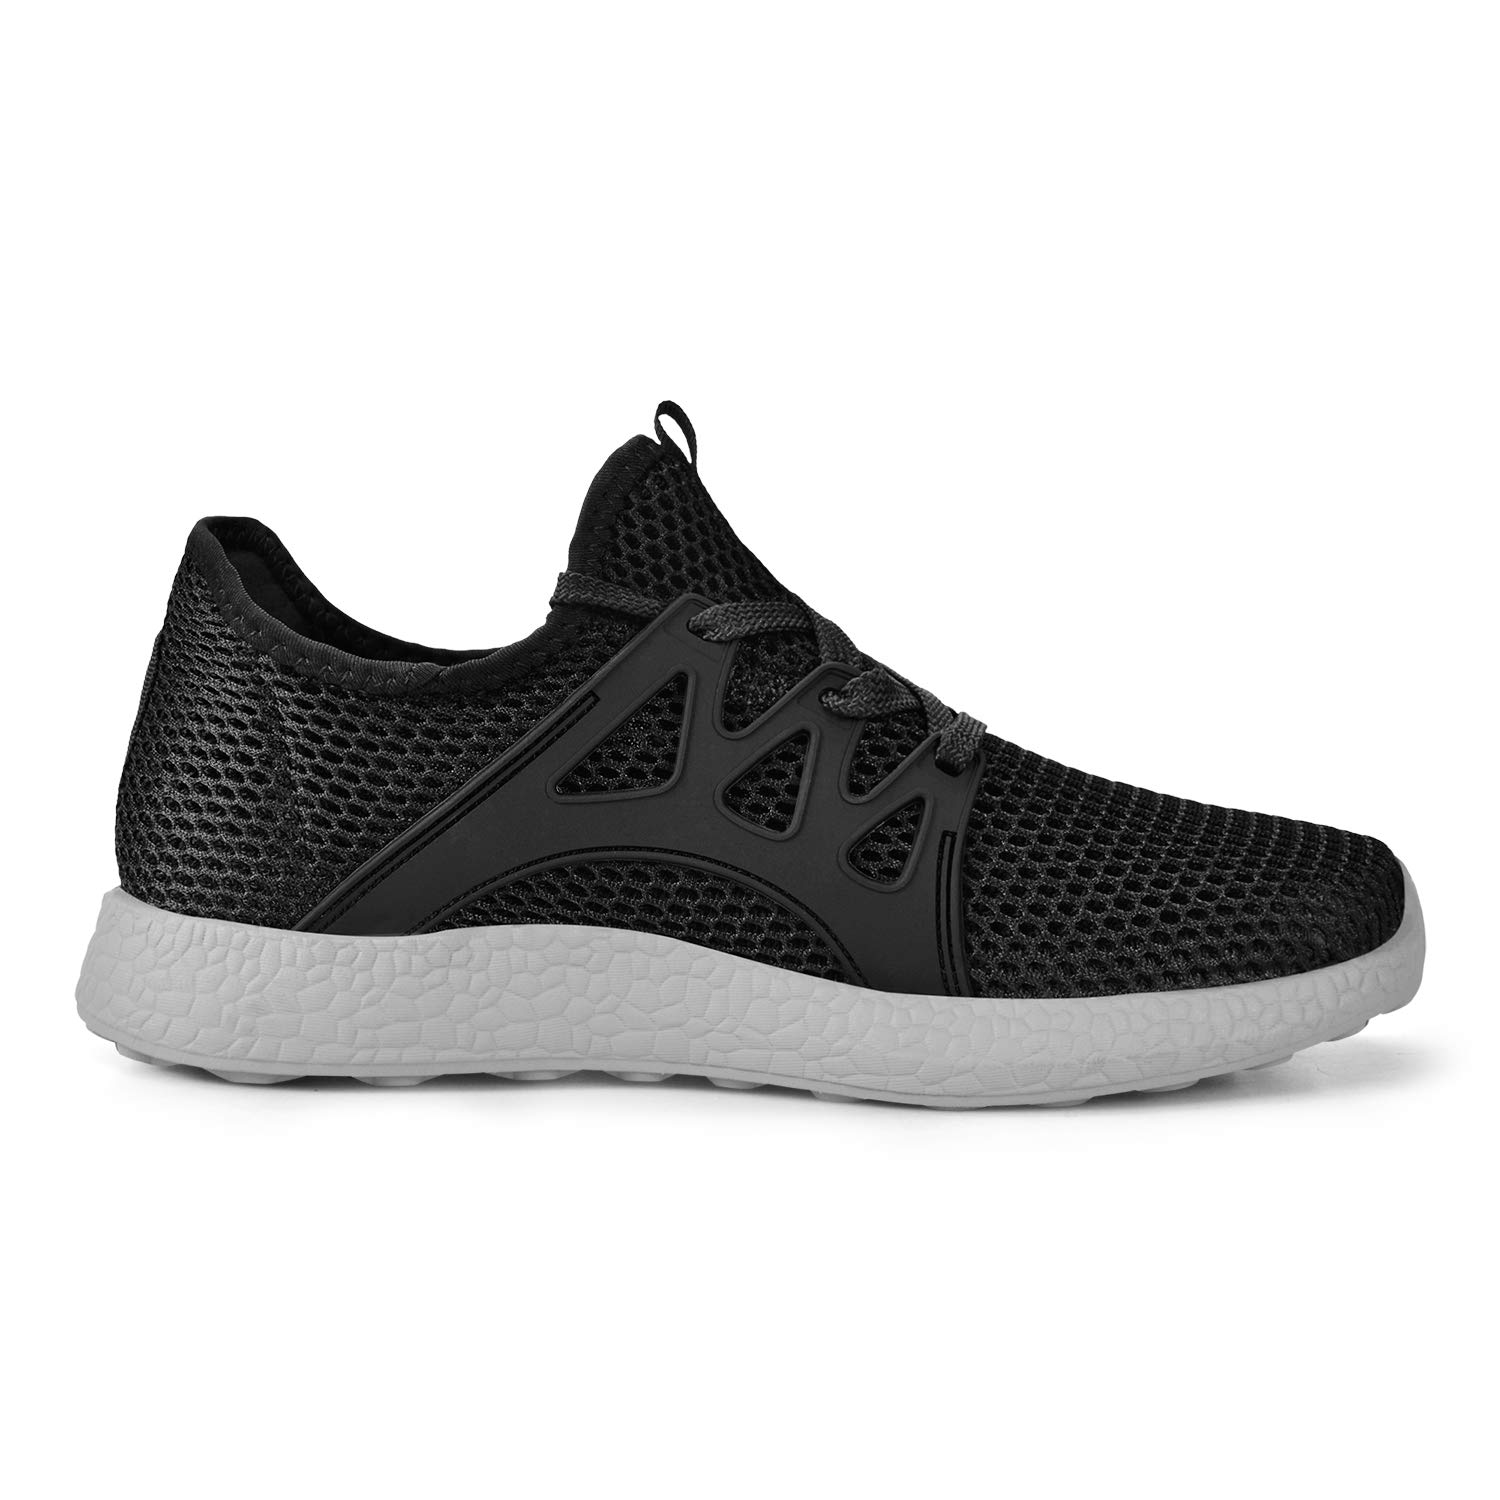 Feetmat Womens Sneakers Ultra Lightweight Breathable Mesh Athletic Walking Running Shoes Black/Grey 9.5 by Feetmat